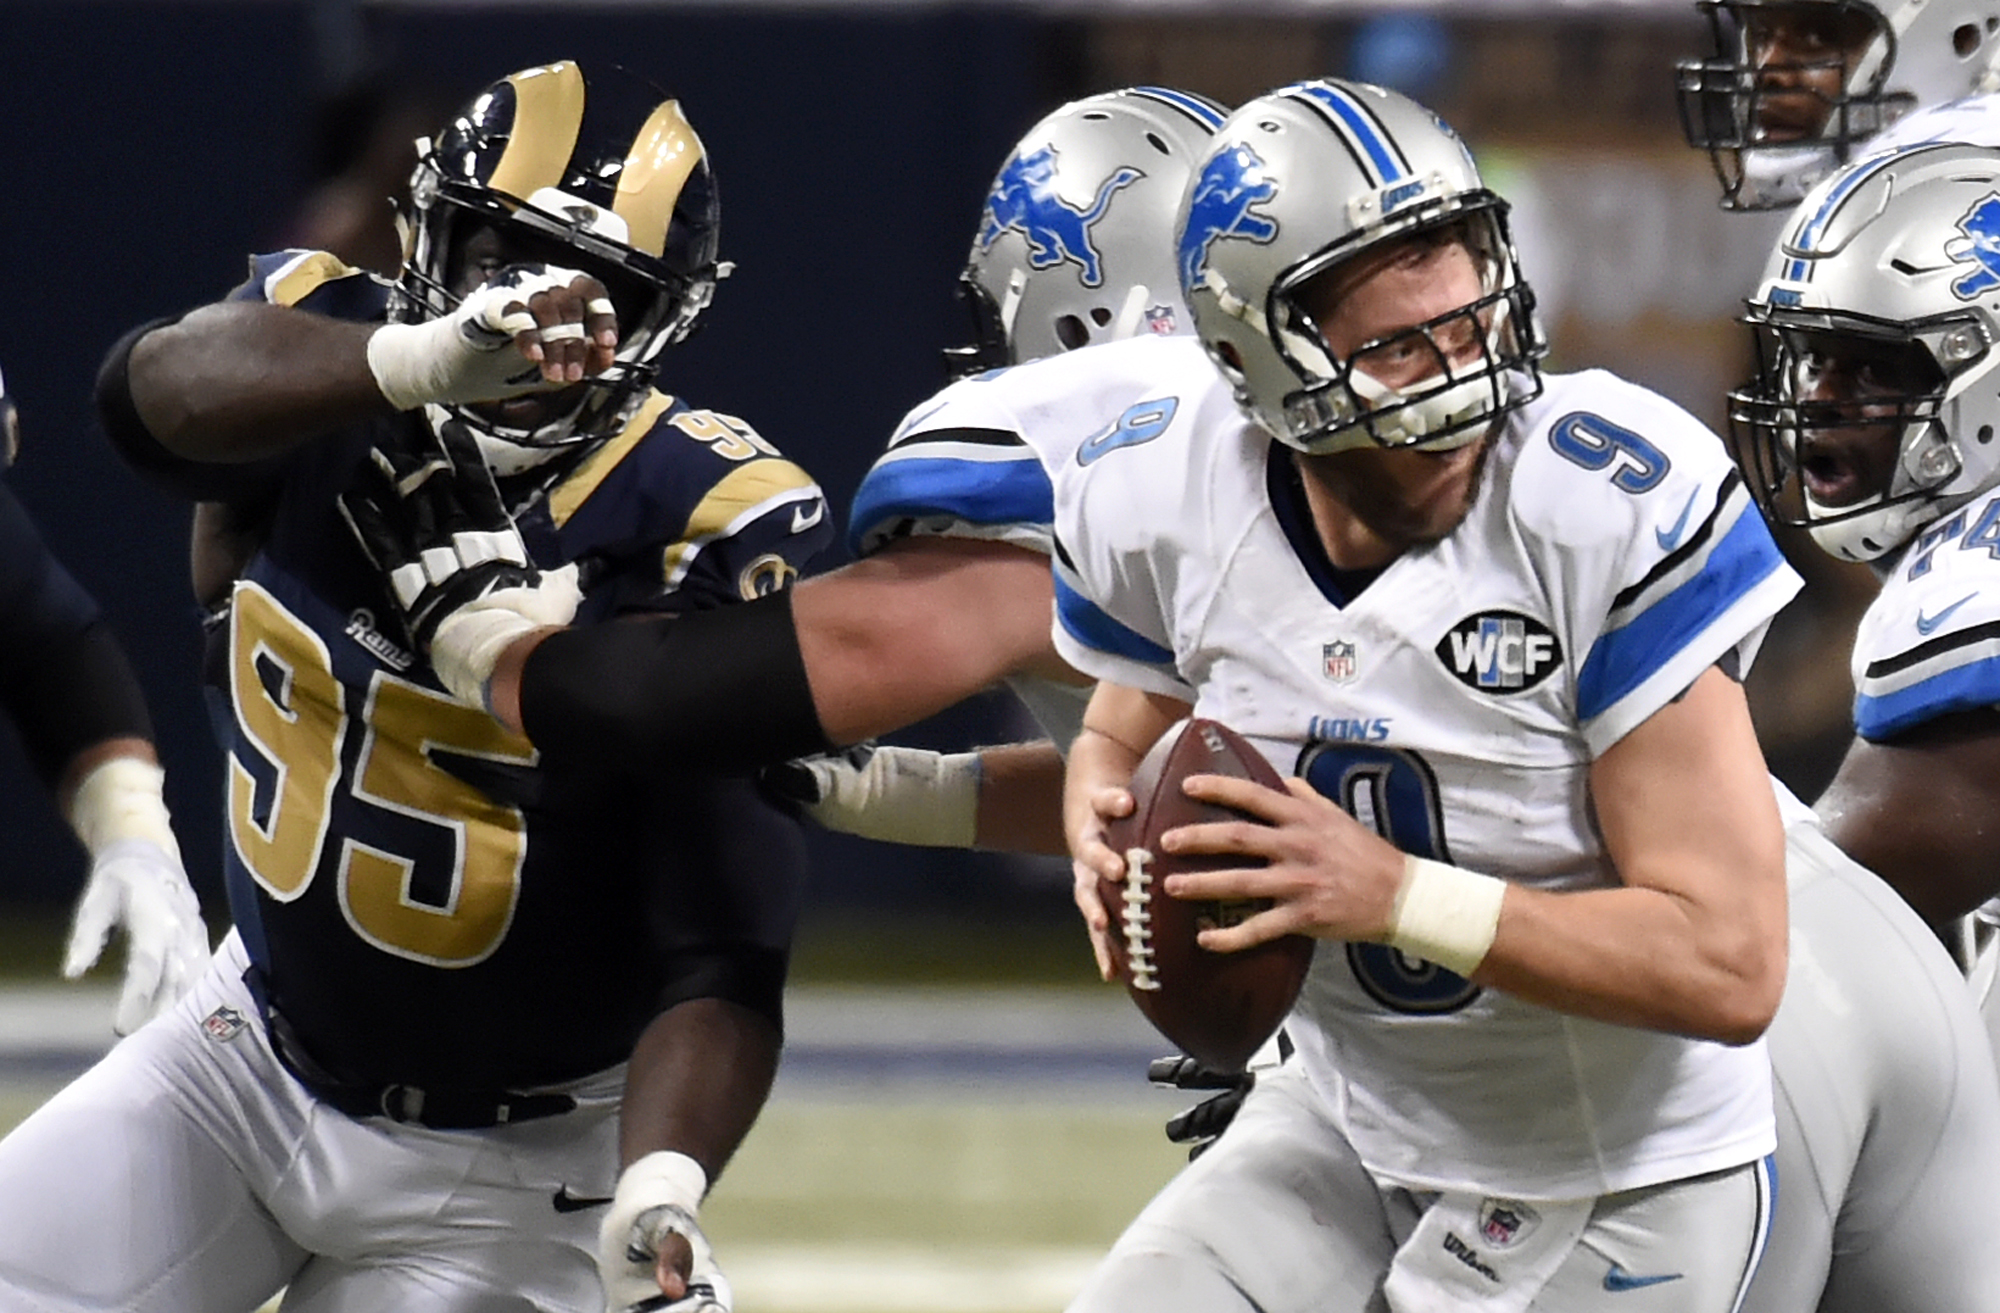 Detroit Lions quarterback Matthew Stafford, right, scrambles under pressure from St. Louis Rams defensive end William Hayes (95) during the fourth quarter of an NFL football game Sunday, Dec. 13, 2015, in St. Louis. (AP Photo/L.G. Patterson)